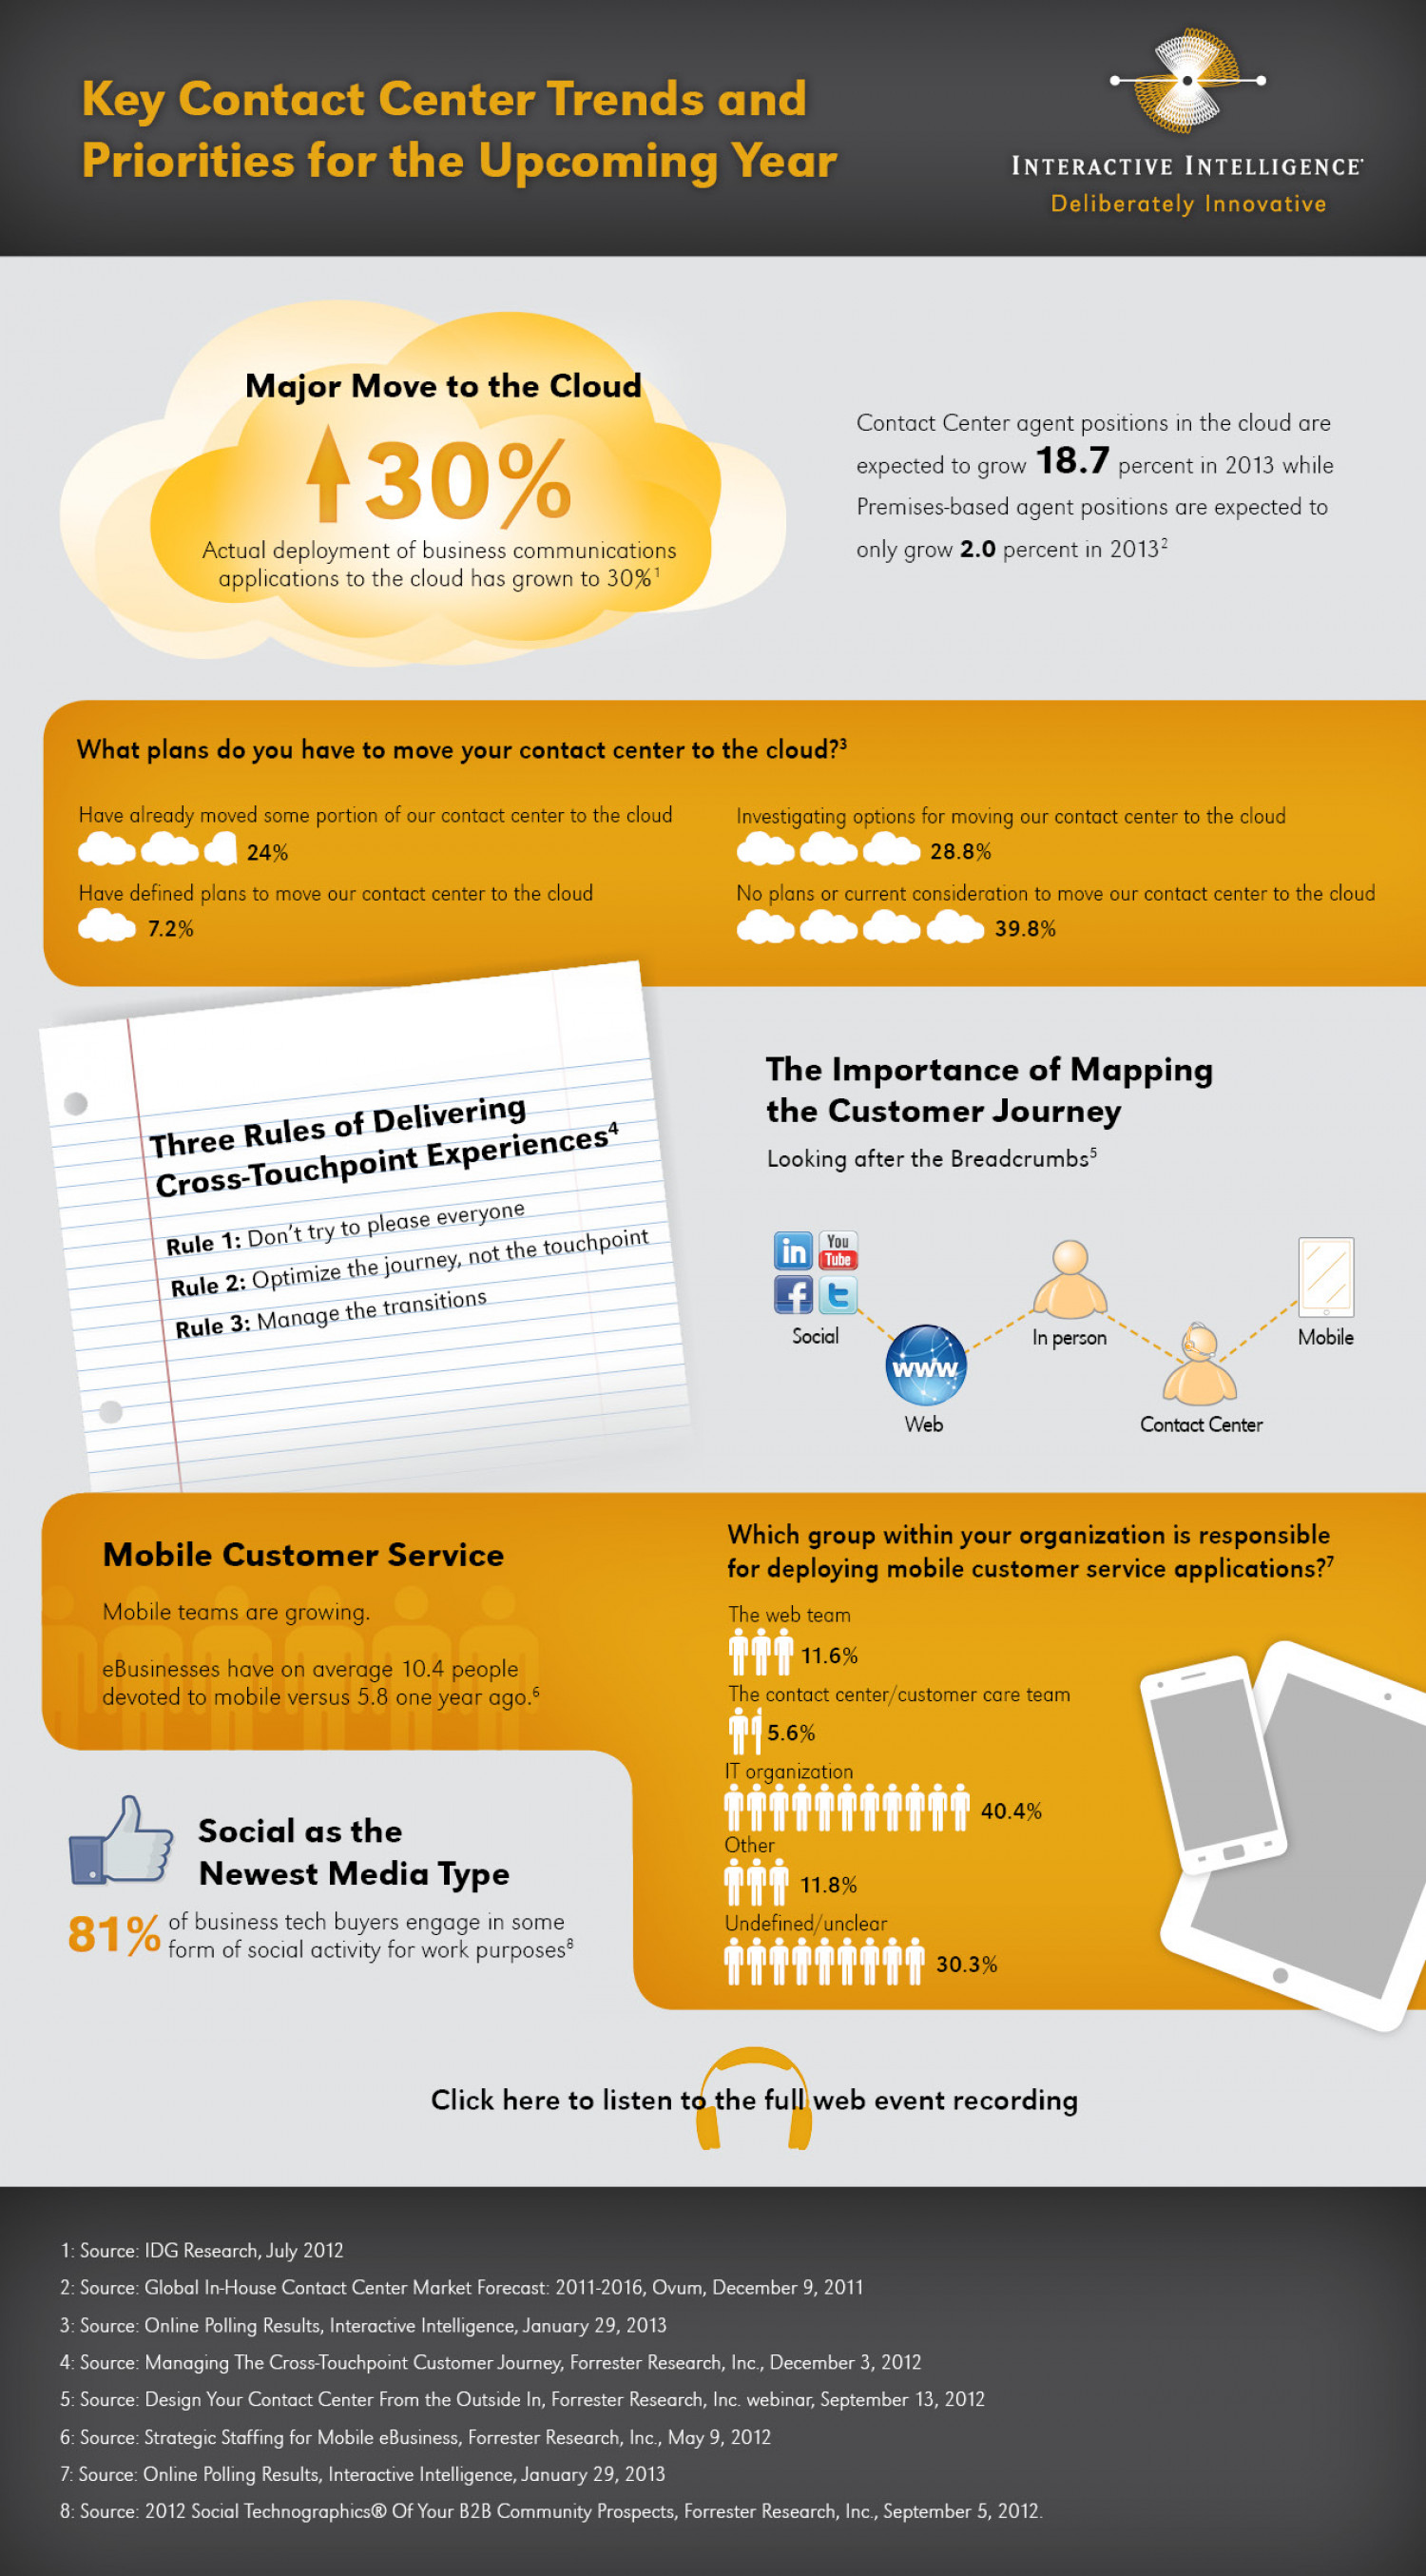 Key Contact Center Trends for 2013 – Interactive Intelligence Infographic